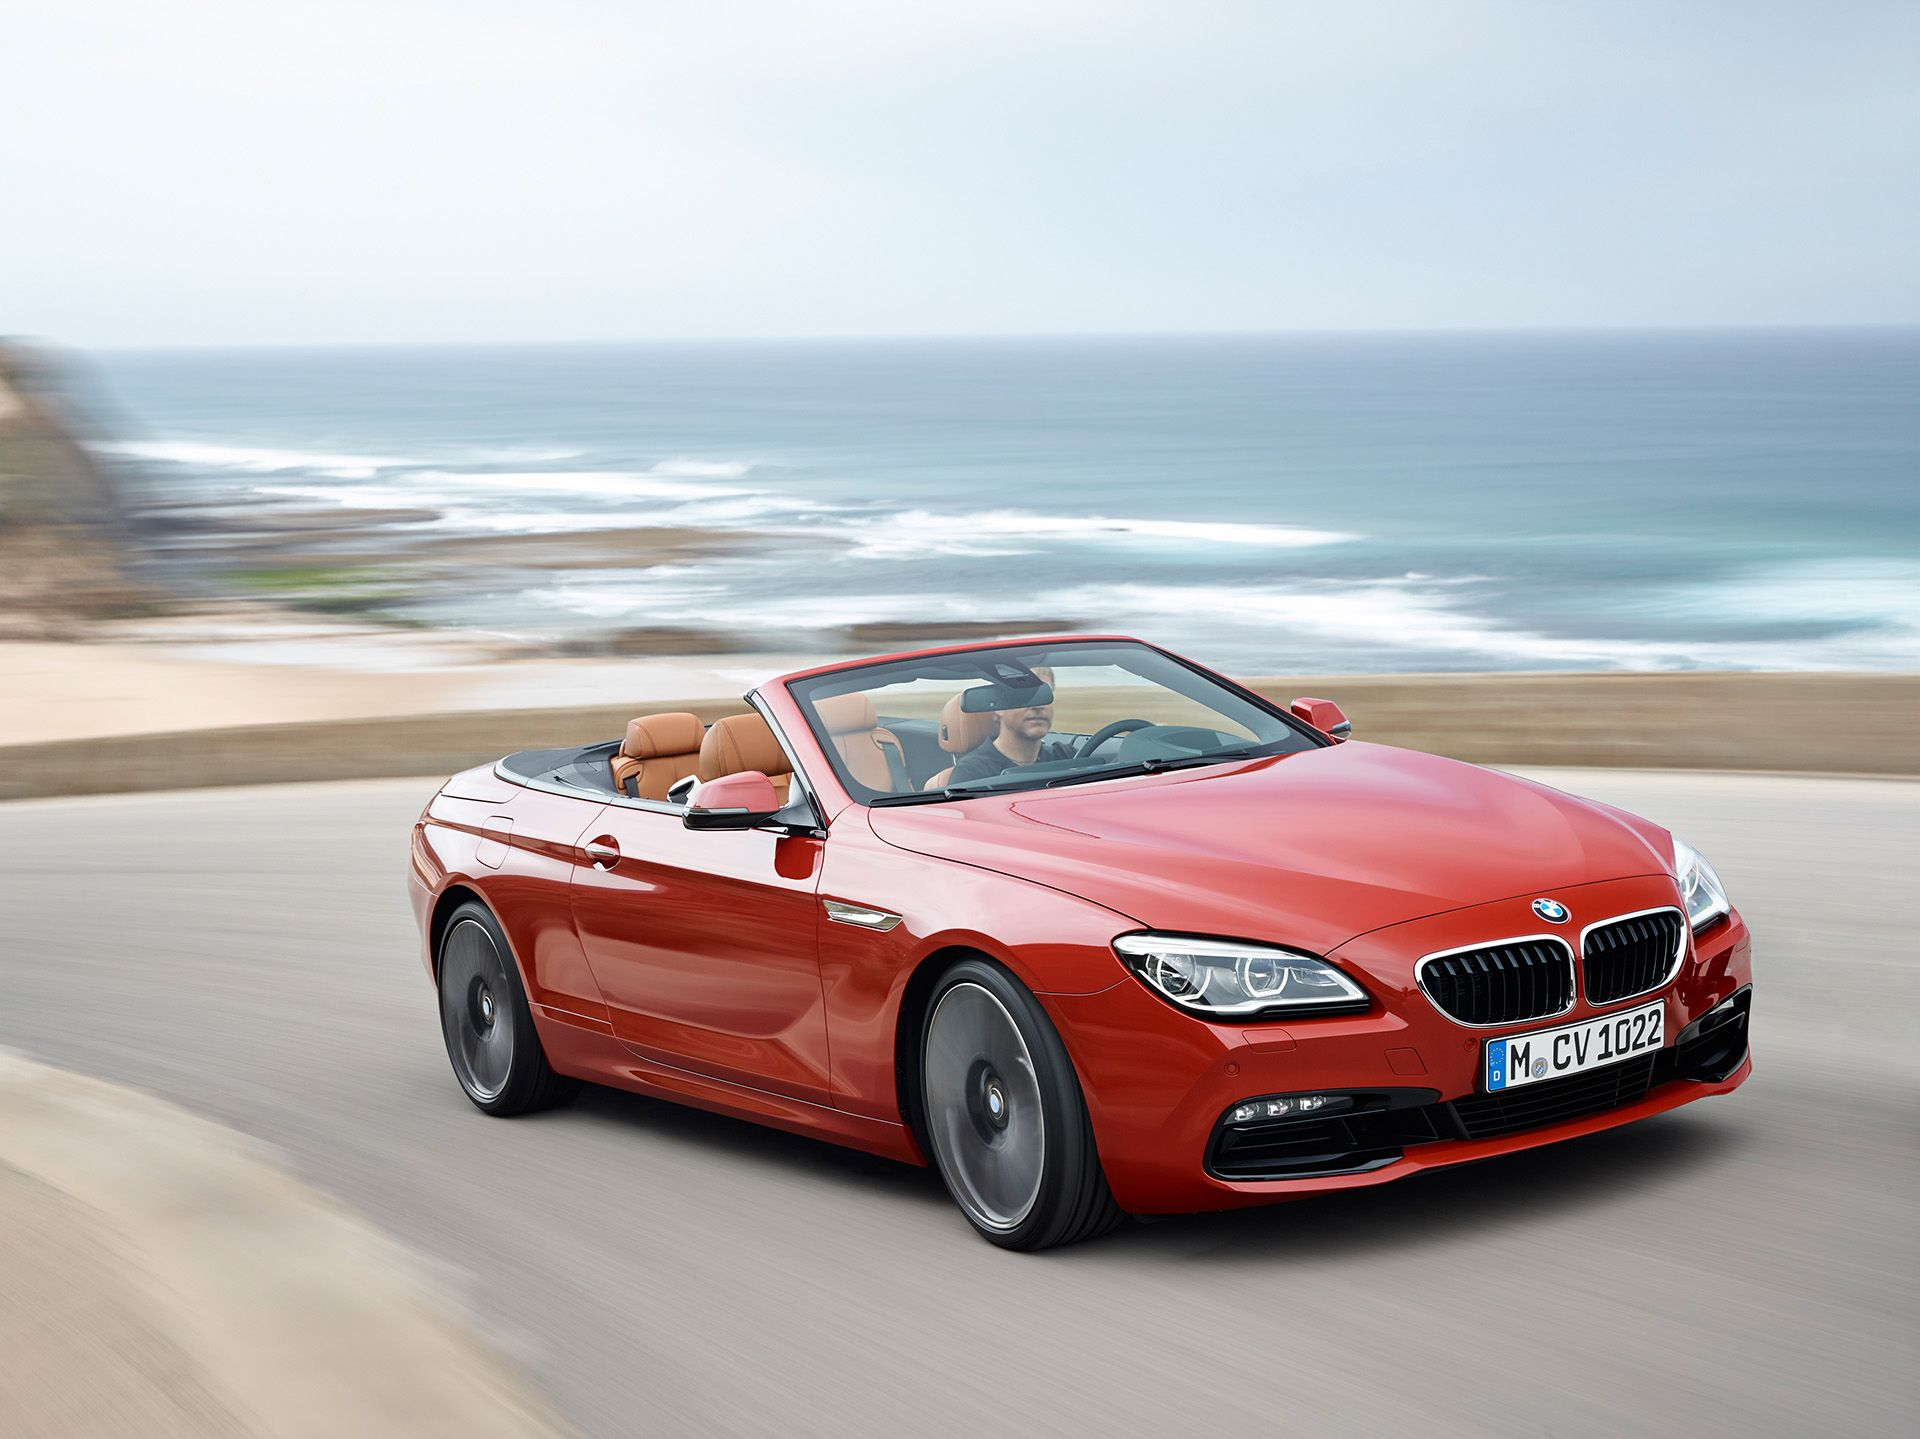 The 2015 Bmw 6 Series Coupe Gran Coupe And M6 Videos Bmw 6